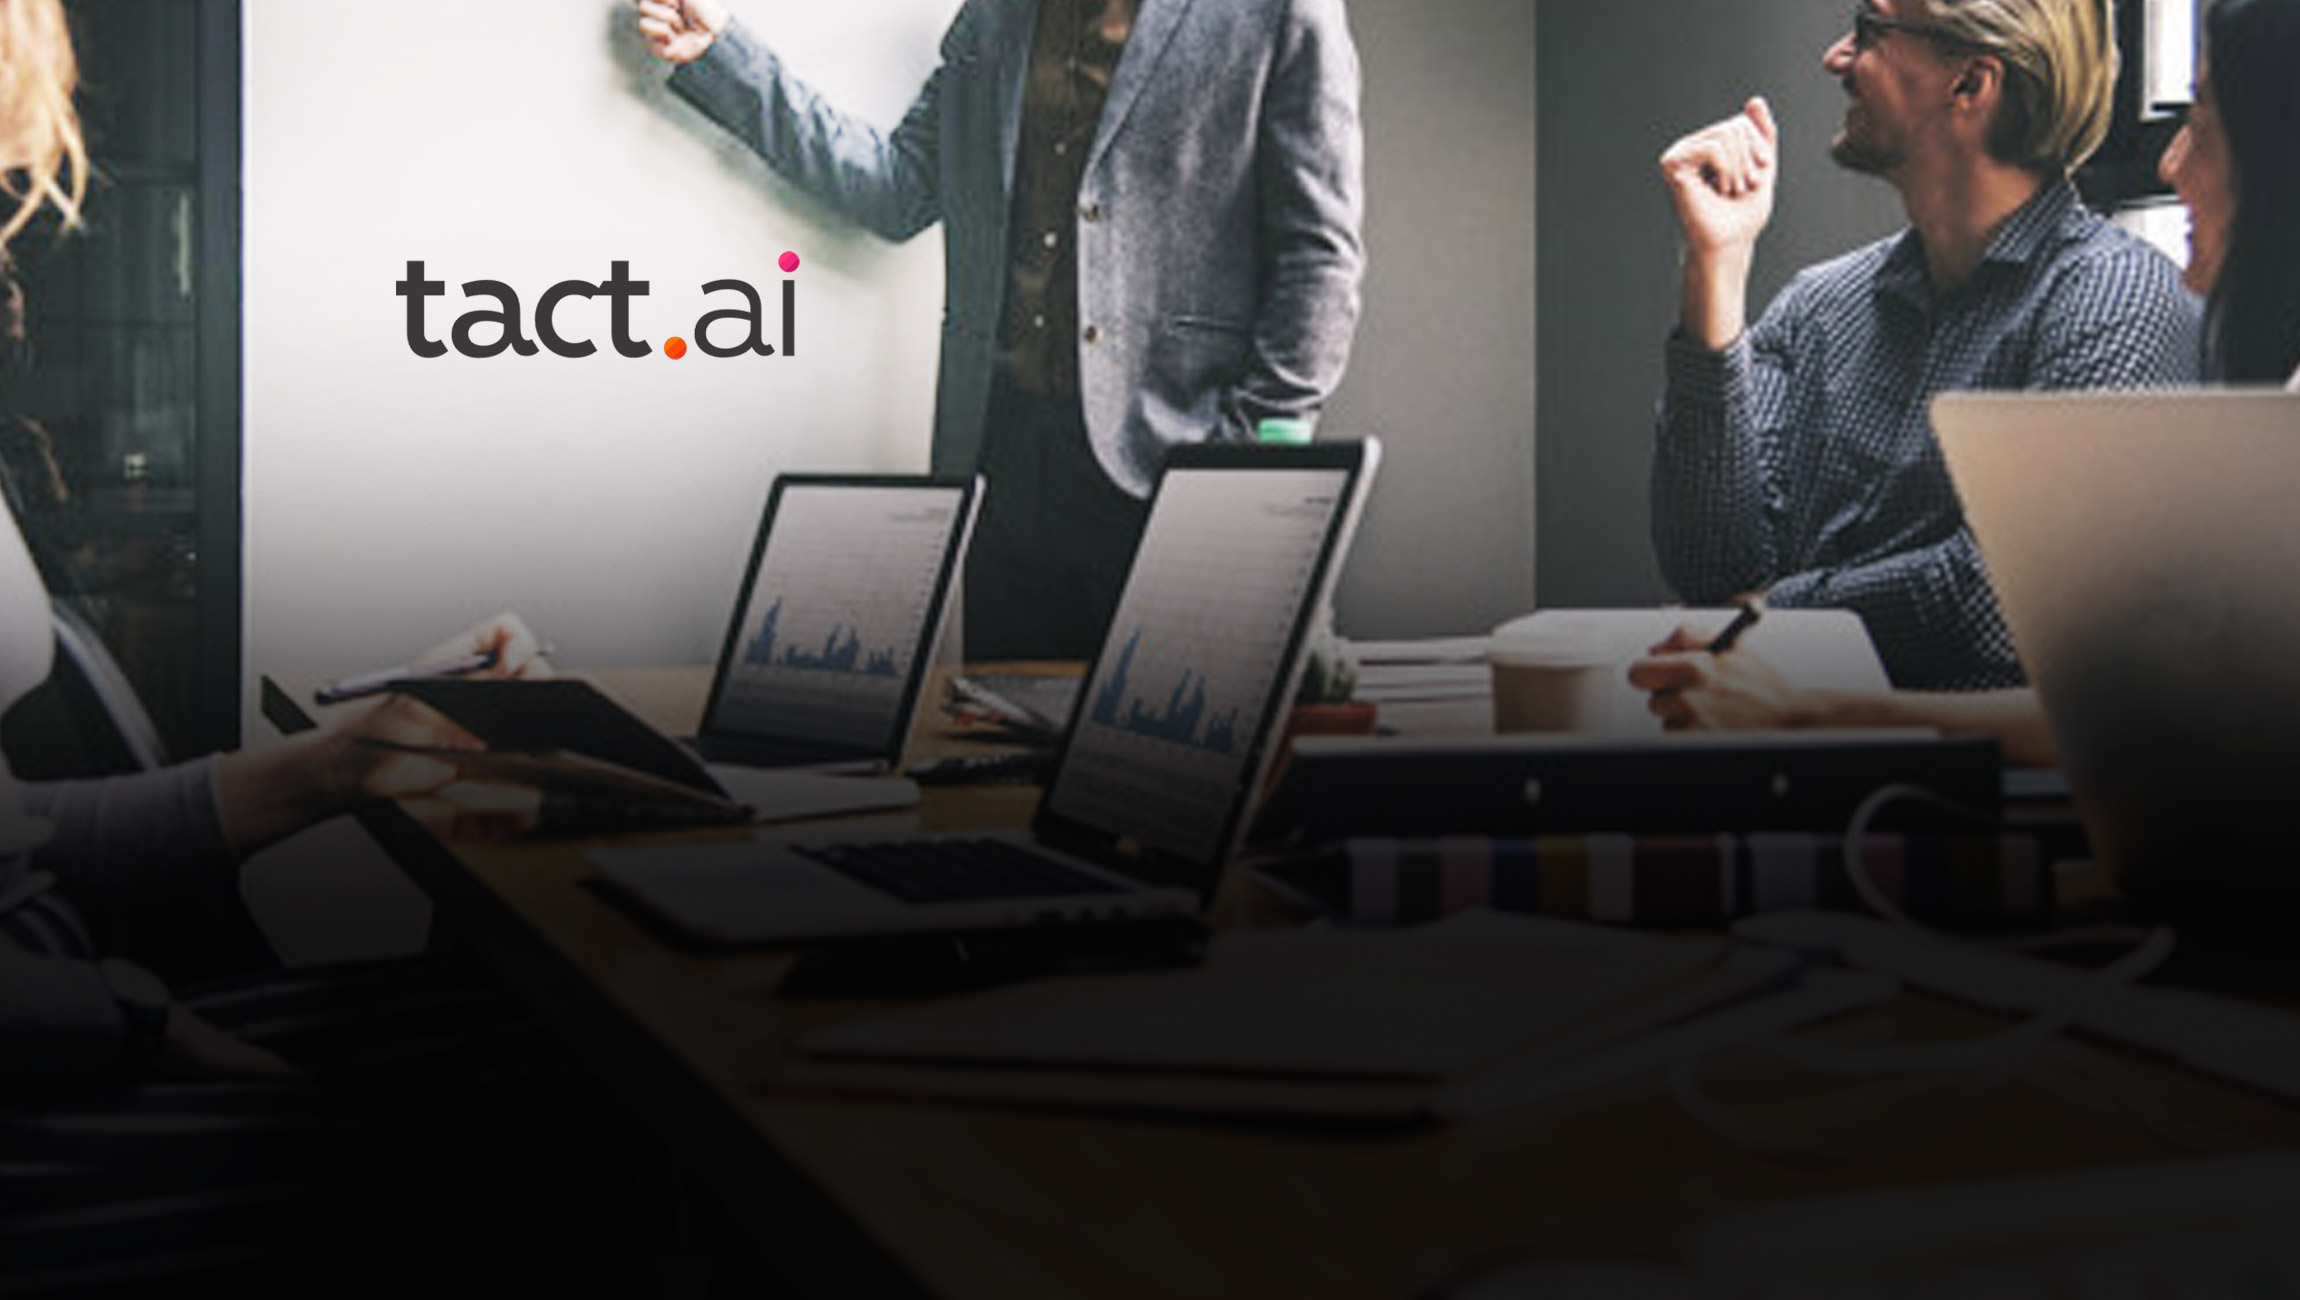 Tact.ai Receives Investment from Honeywell